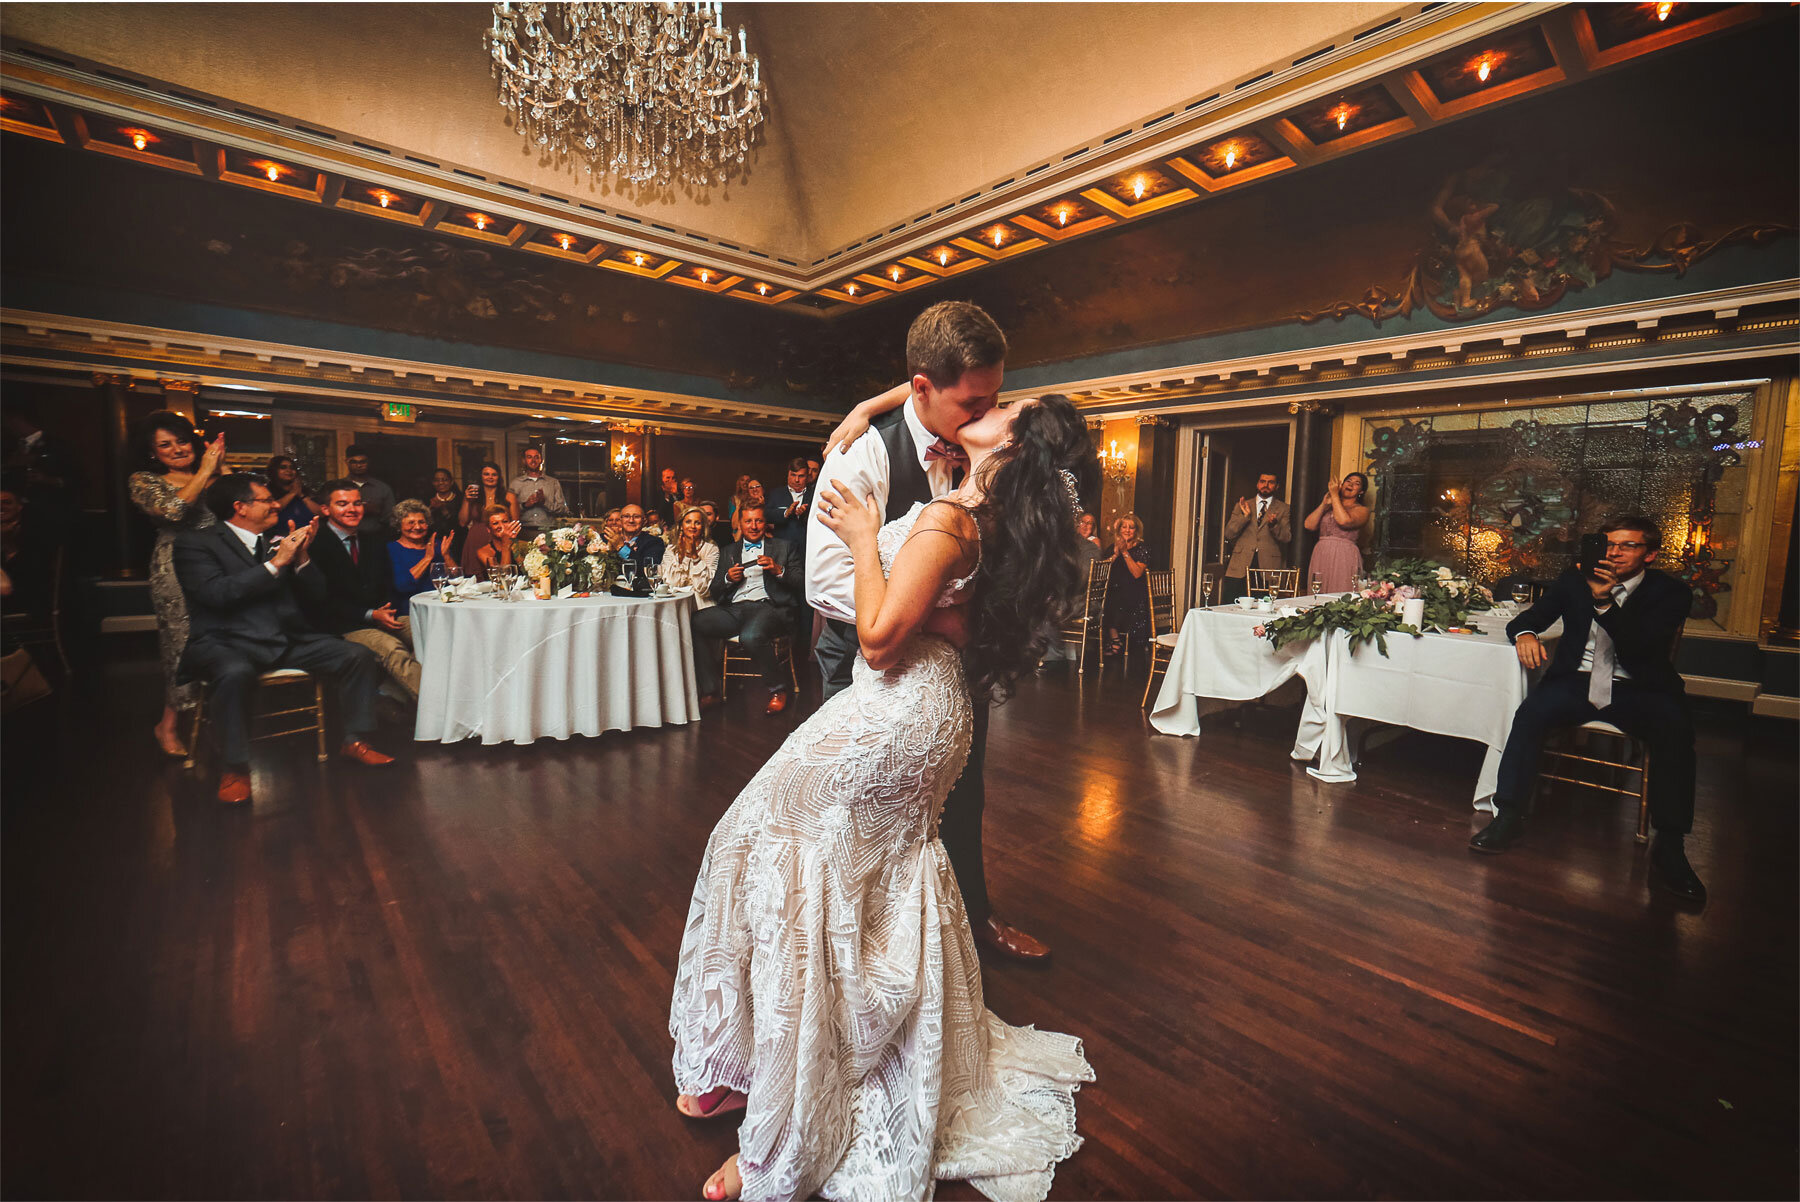 15-Wedding-by-Vick-Photography-Minneapolis-Minnesota-Semple-Mansion-Historic-Venue-Reception-Bride-Groom-Dancing-Dance-Kiss-Kaitlyn-and-Nate.jpg